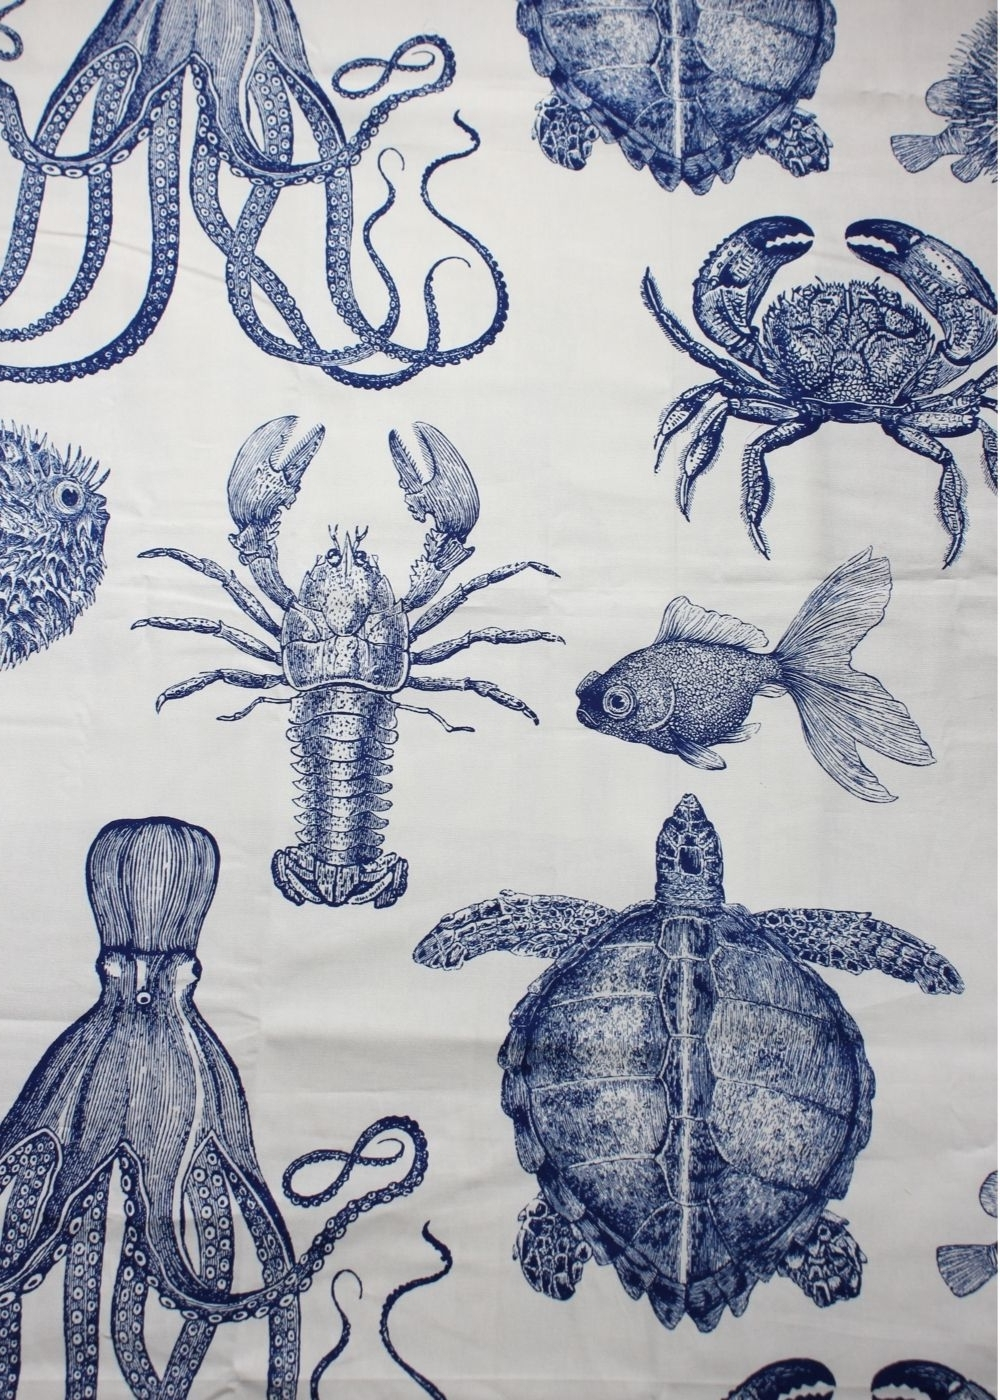 Sea Life Wall Art Throughout Famous Diy Sea Life Wall Art – Broken Wall Art Gets A New Life With This (View 5 of 15)